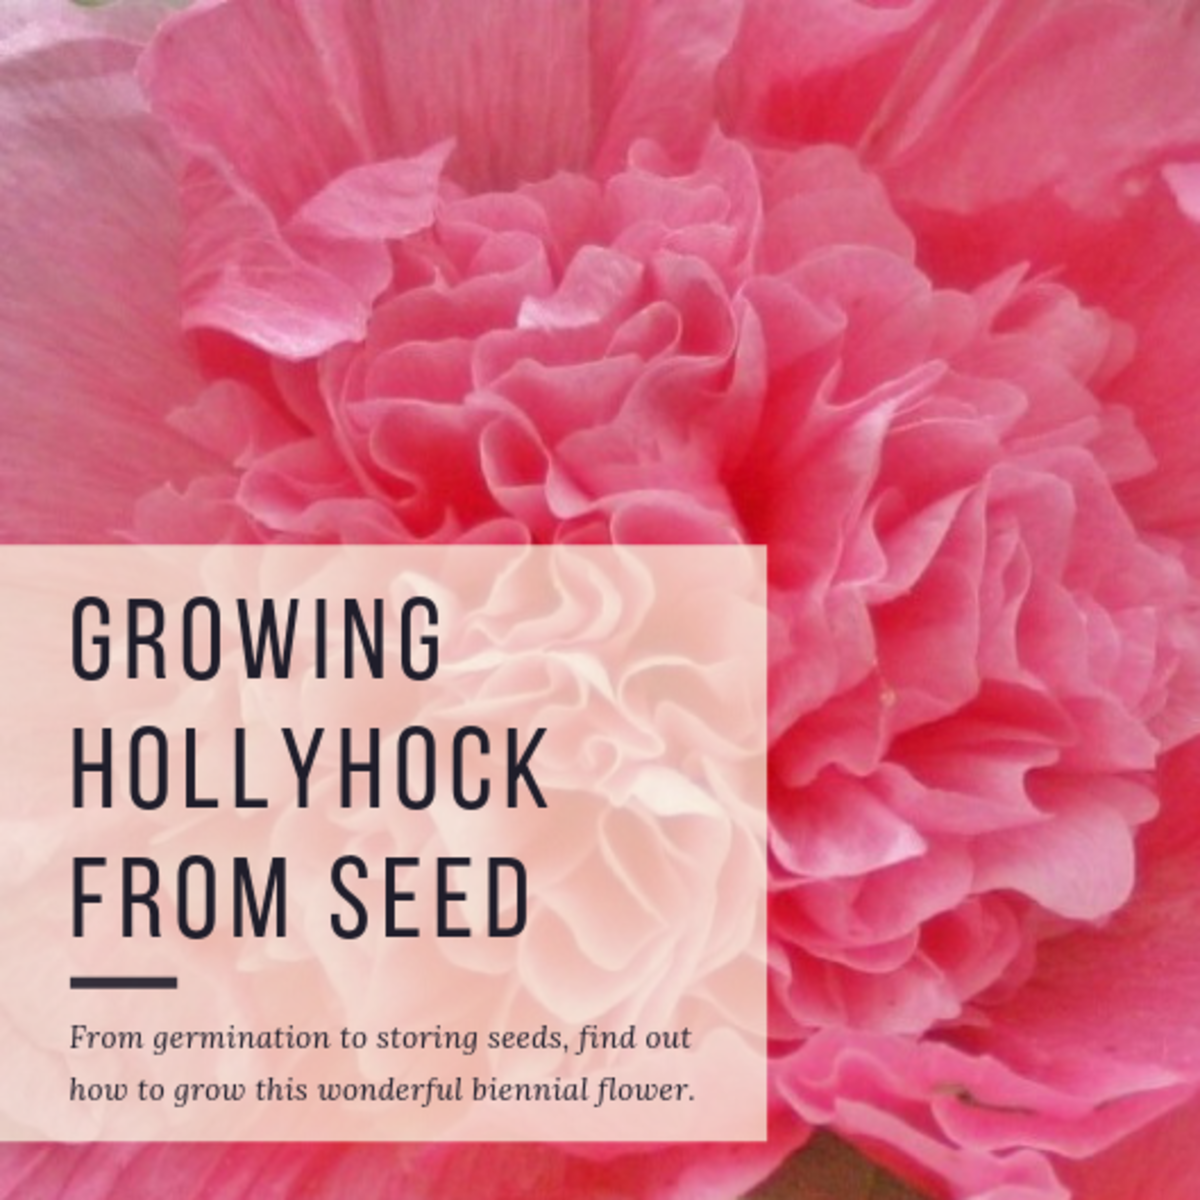 This guide will show you everything you need to know to grow, care for, and propagate the wonderful biennial Alcea rosea, also known as hollyhock.